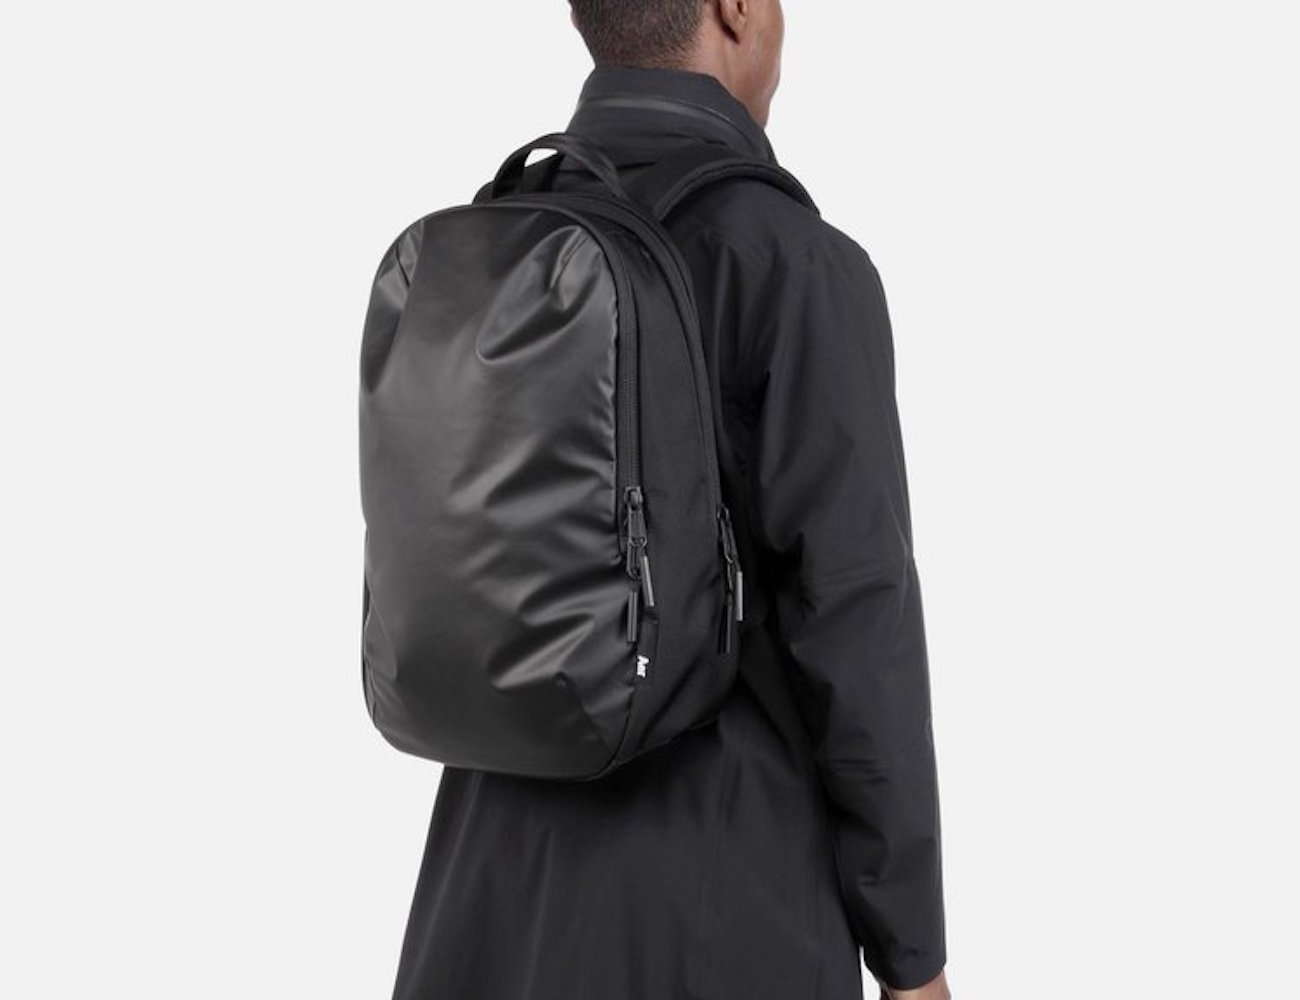 Aer Day Pack Minimalist Everyday Backpack